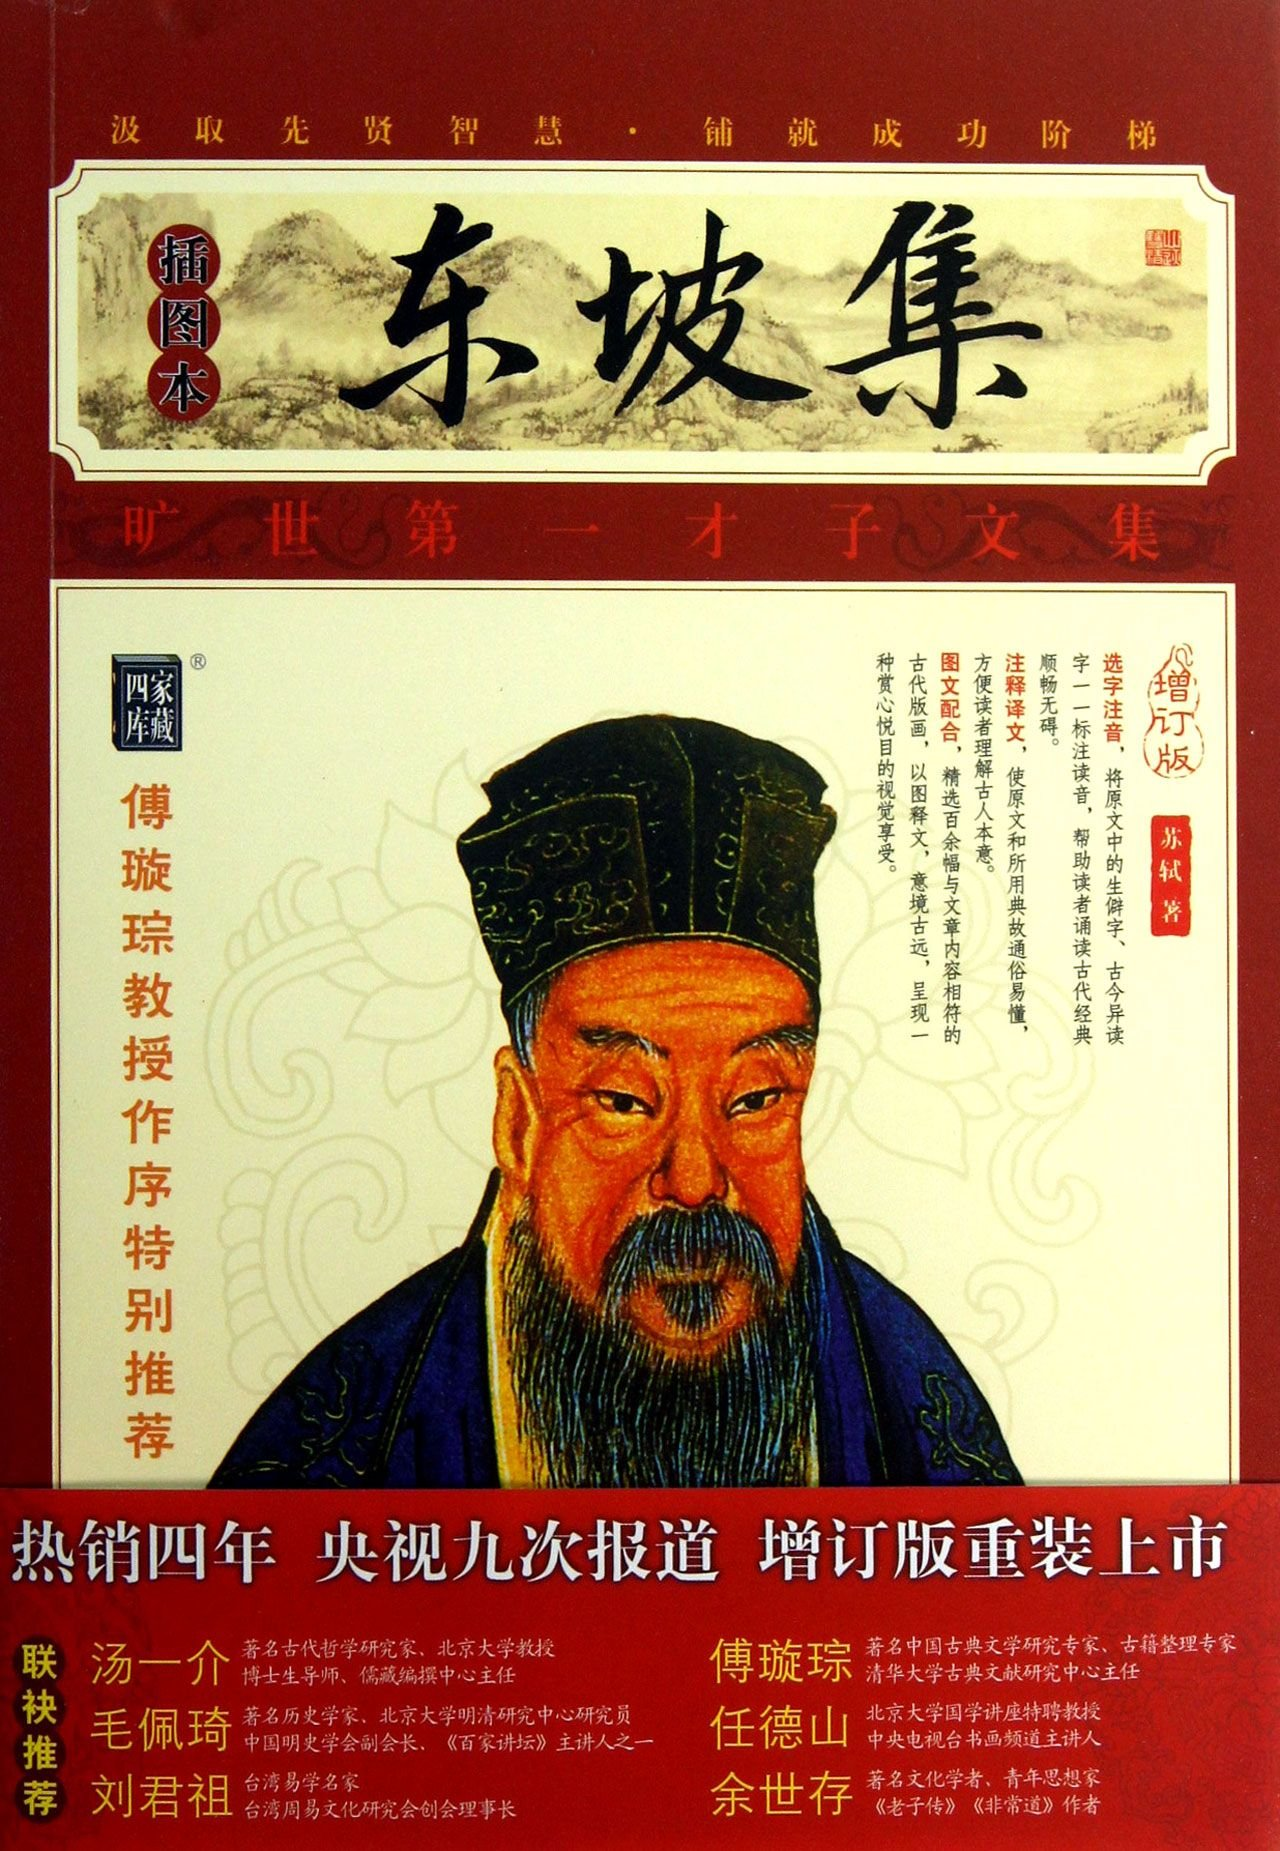 Download The Selected Works of Su Shi (The Revised and Enlarged Illustrated Edition) (Chinese Edition) ebook